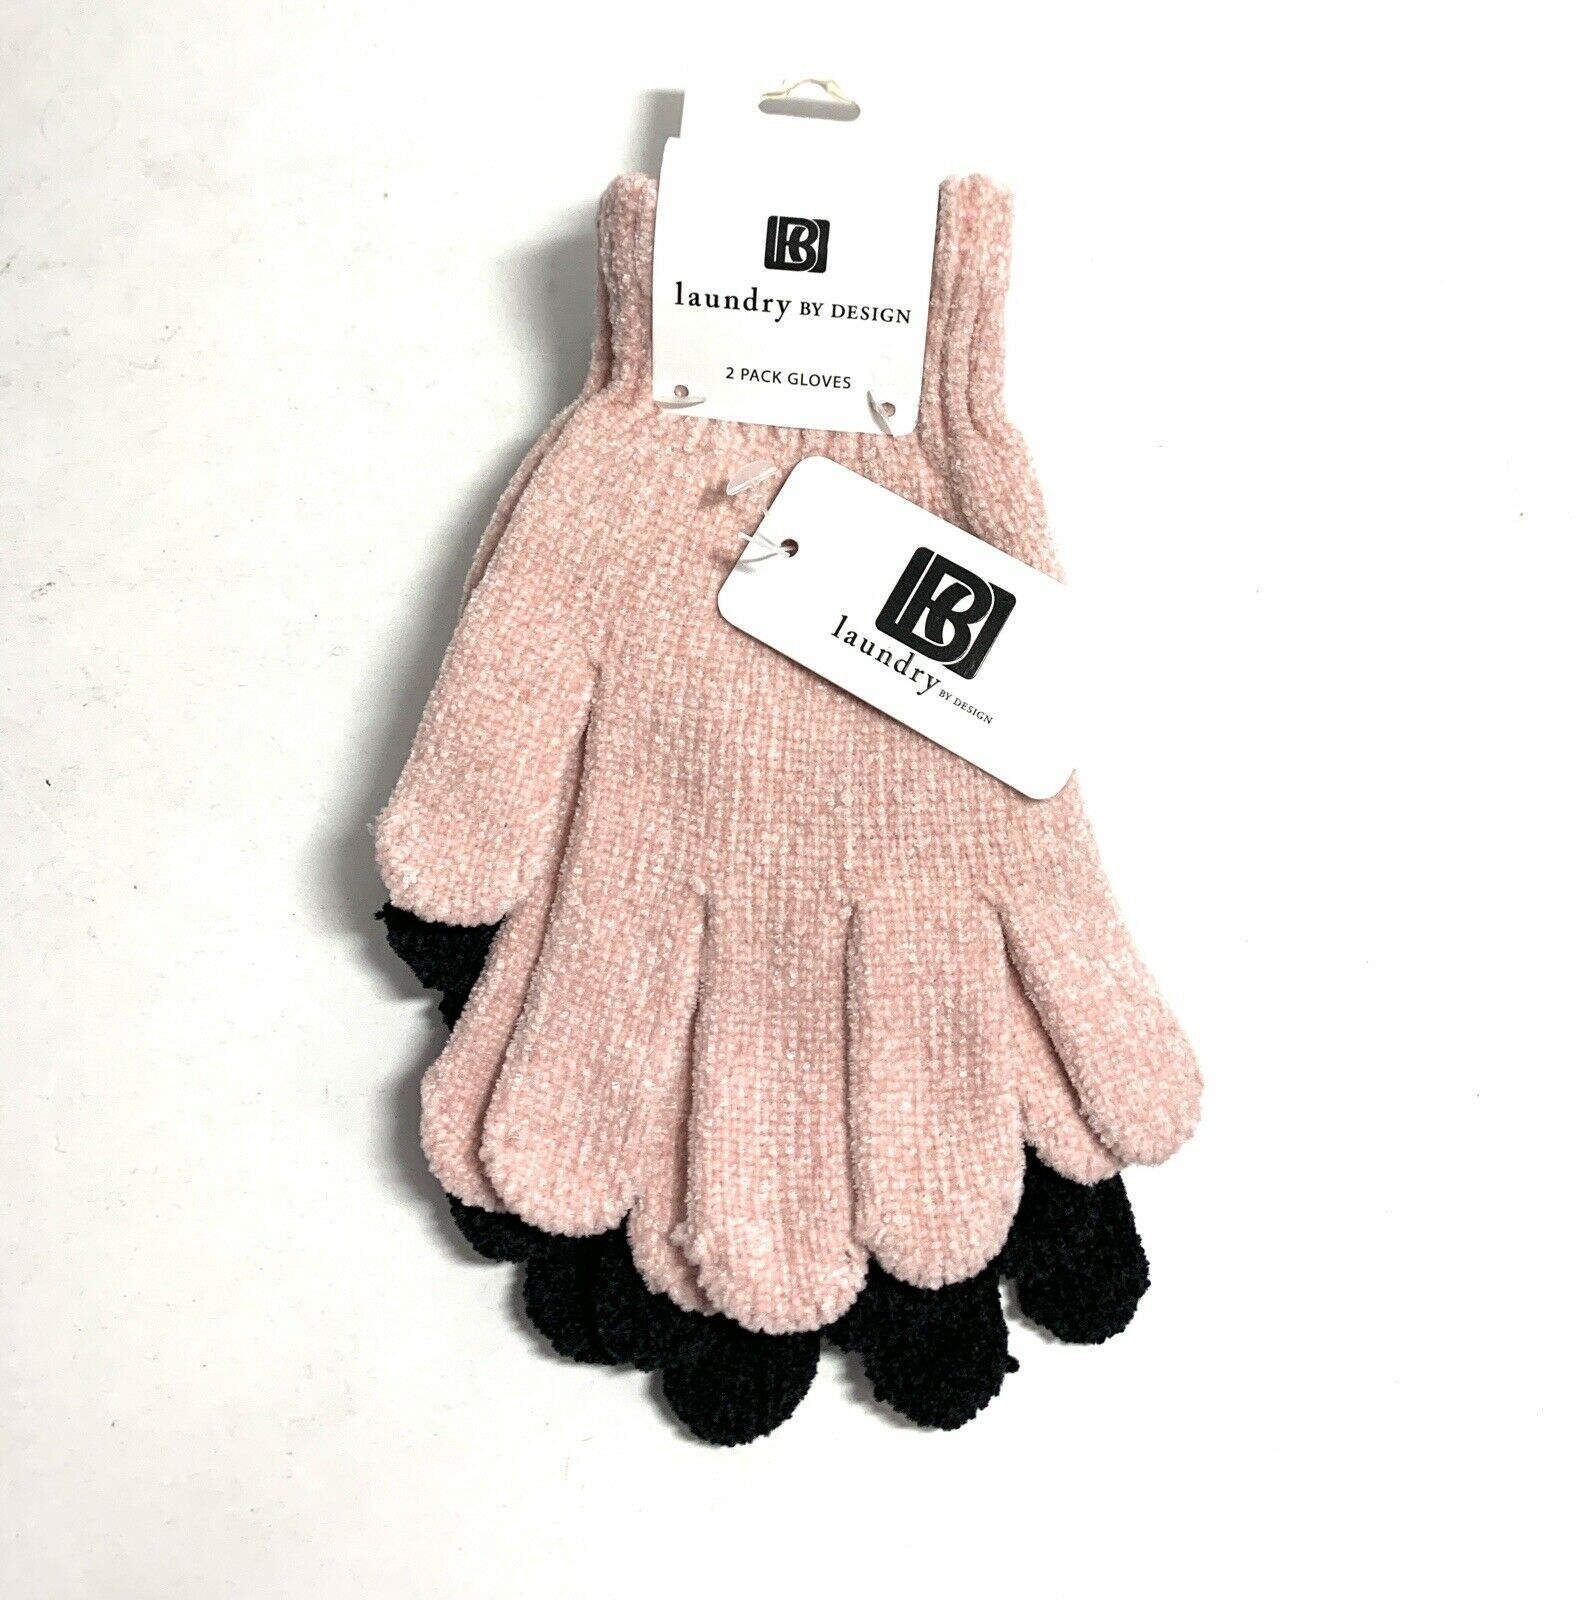 2 Pk Womens Winter Glove Set Pink & Black One Size Laundry by Design NEW